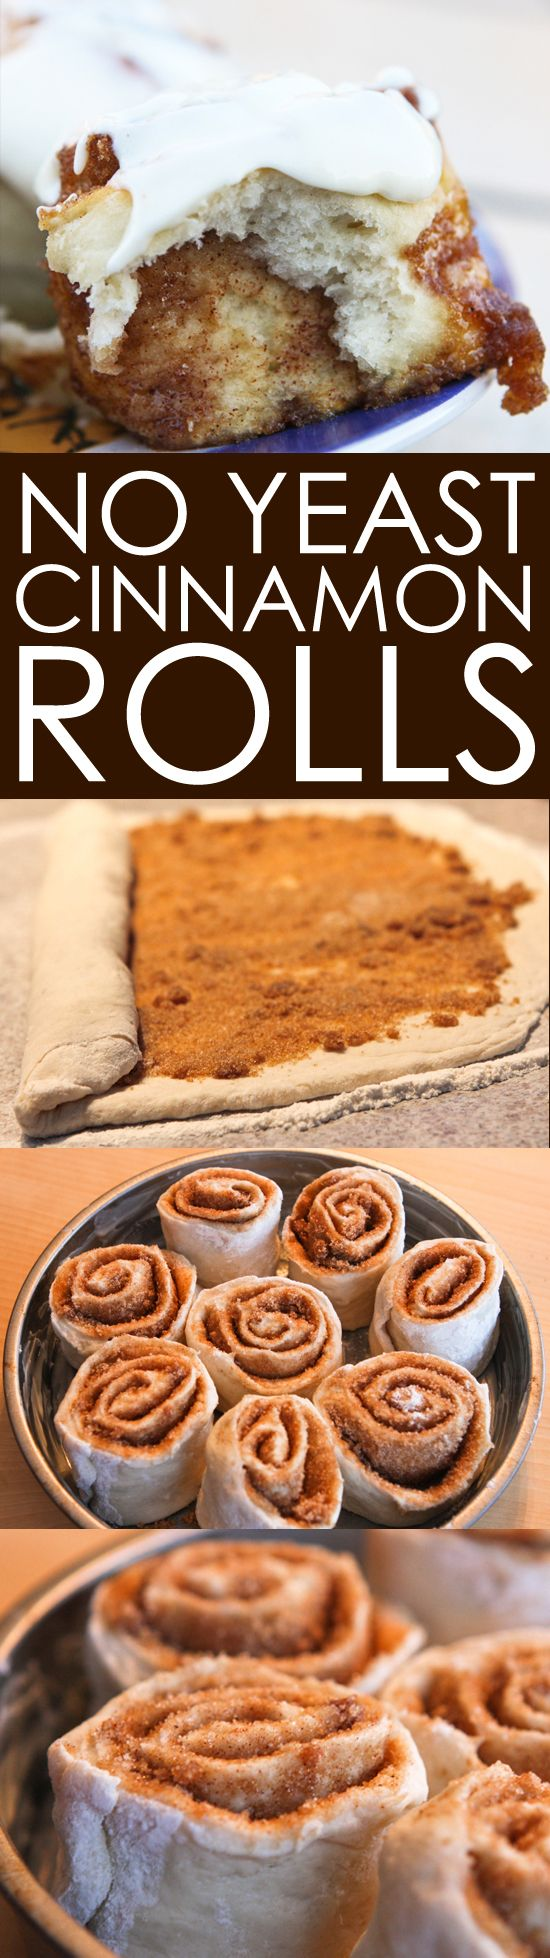 No Yeast Cinnamon Rolls Ditch The Yeast And Make Cinnamon Rolls Easy